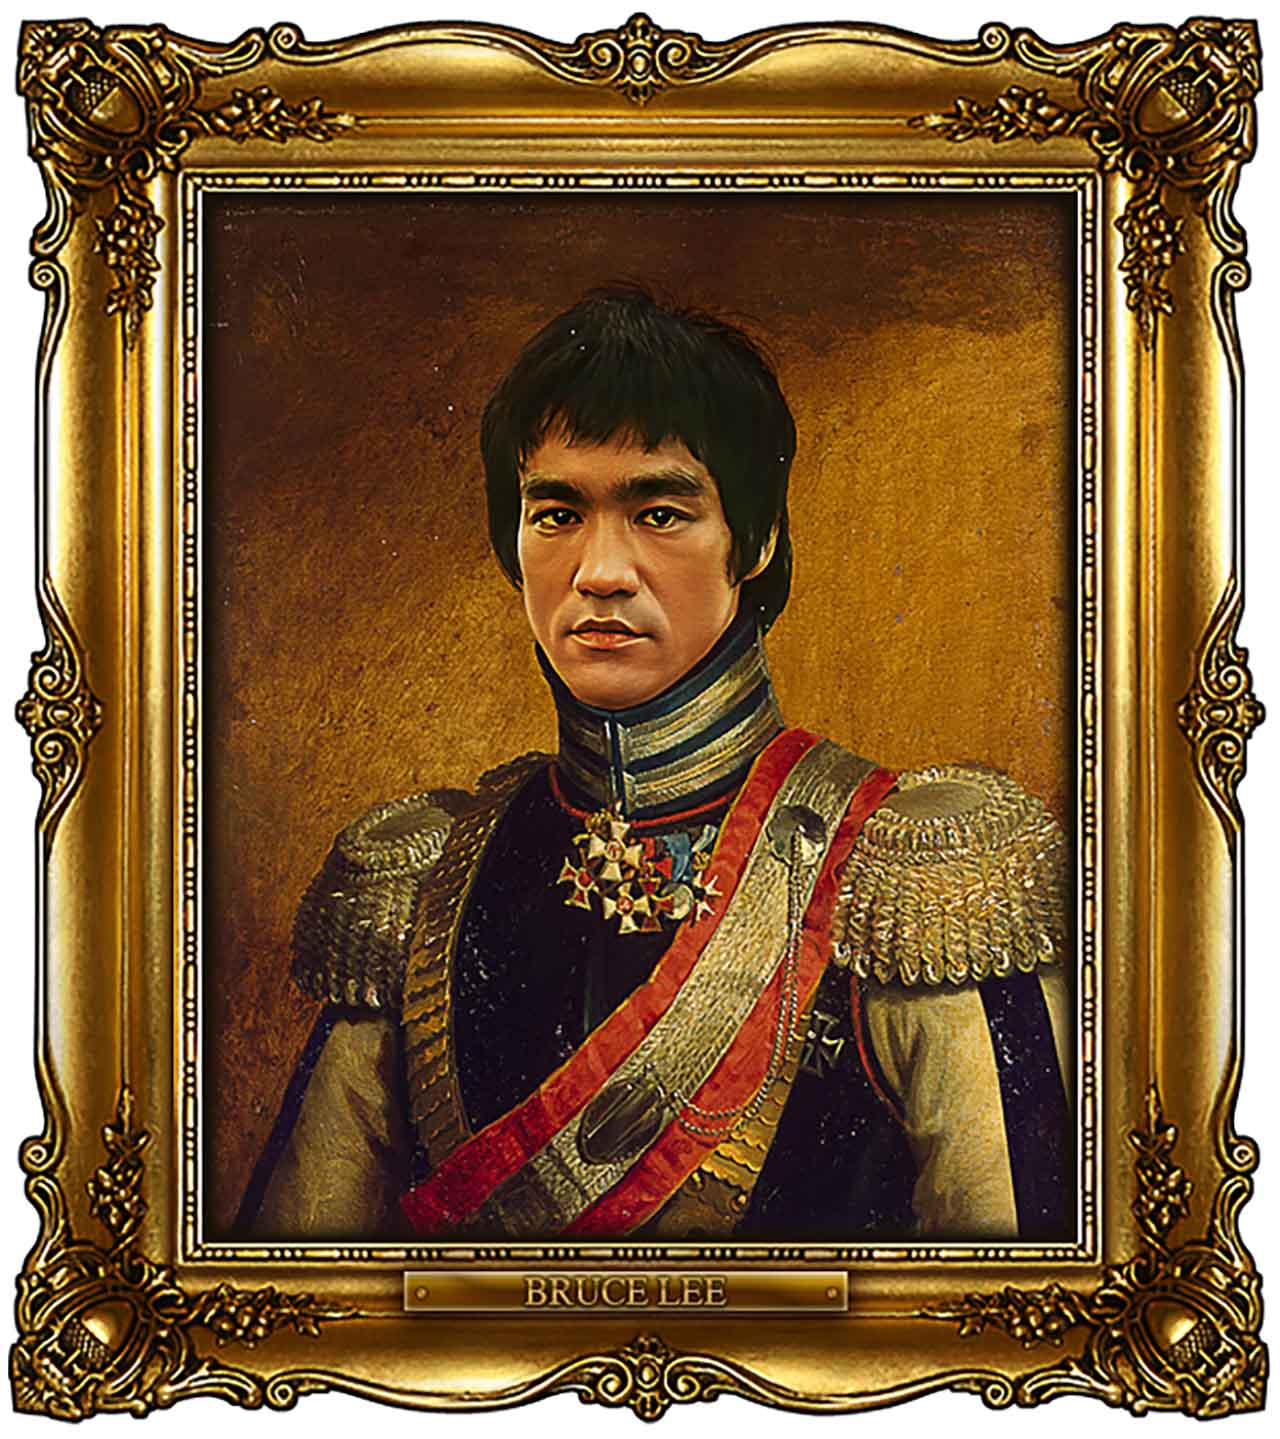 Artist Turns Famous Actors Into Russian Generals - Bruce Lee